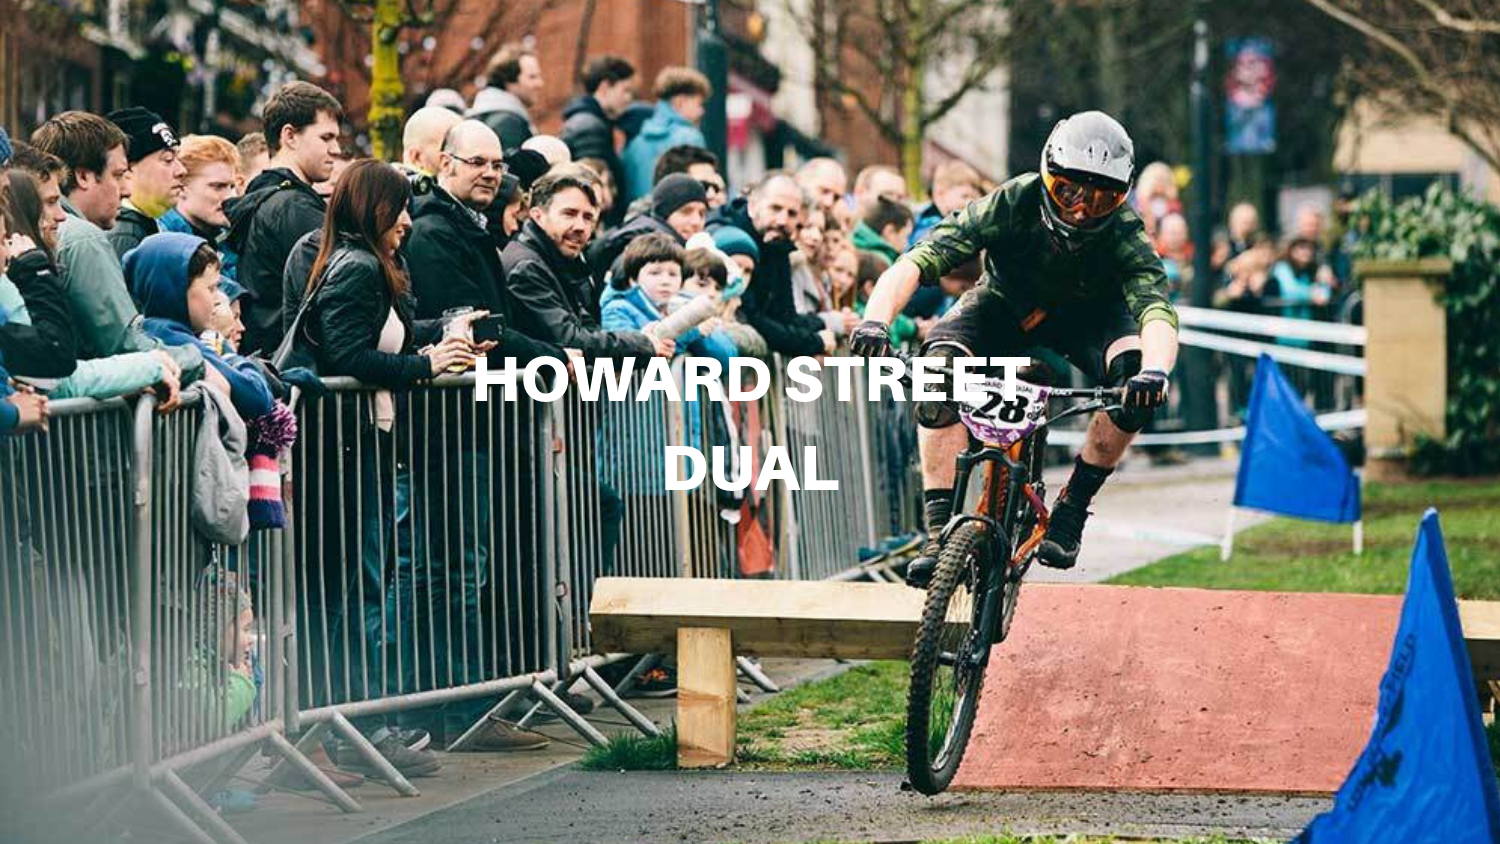 Howard Street Dual - An outside broadcast for the next generation